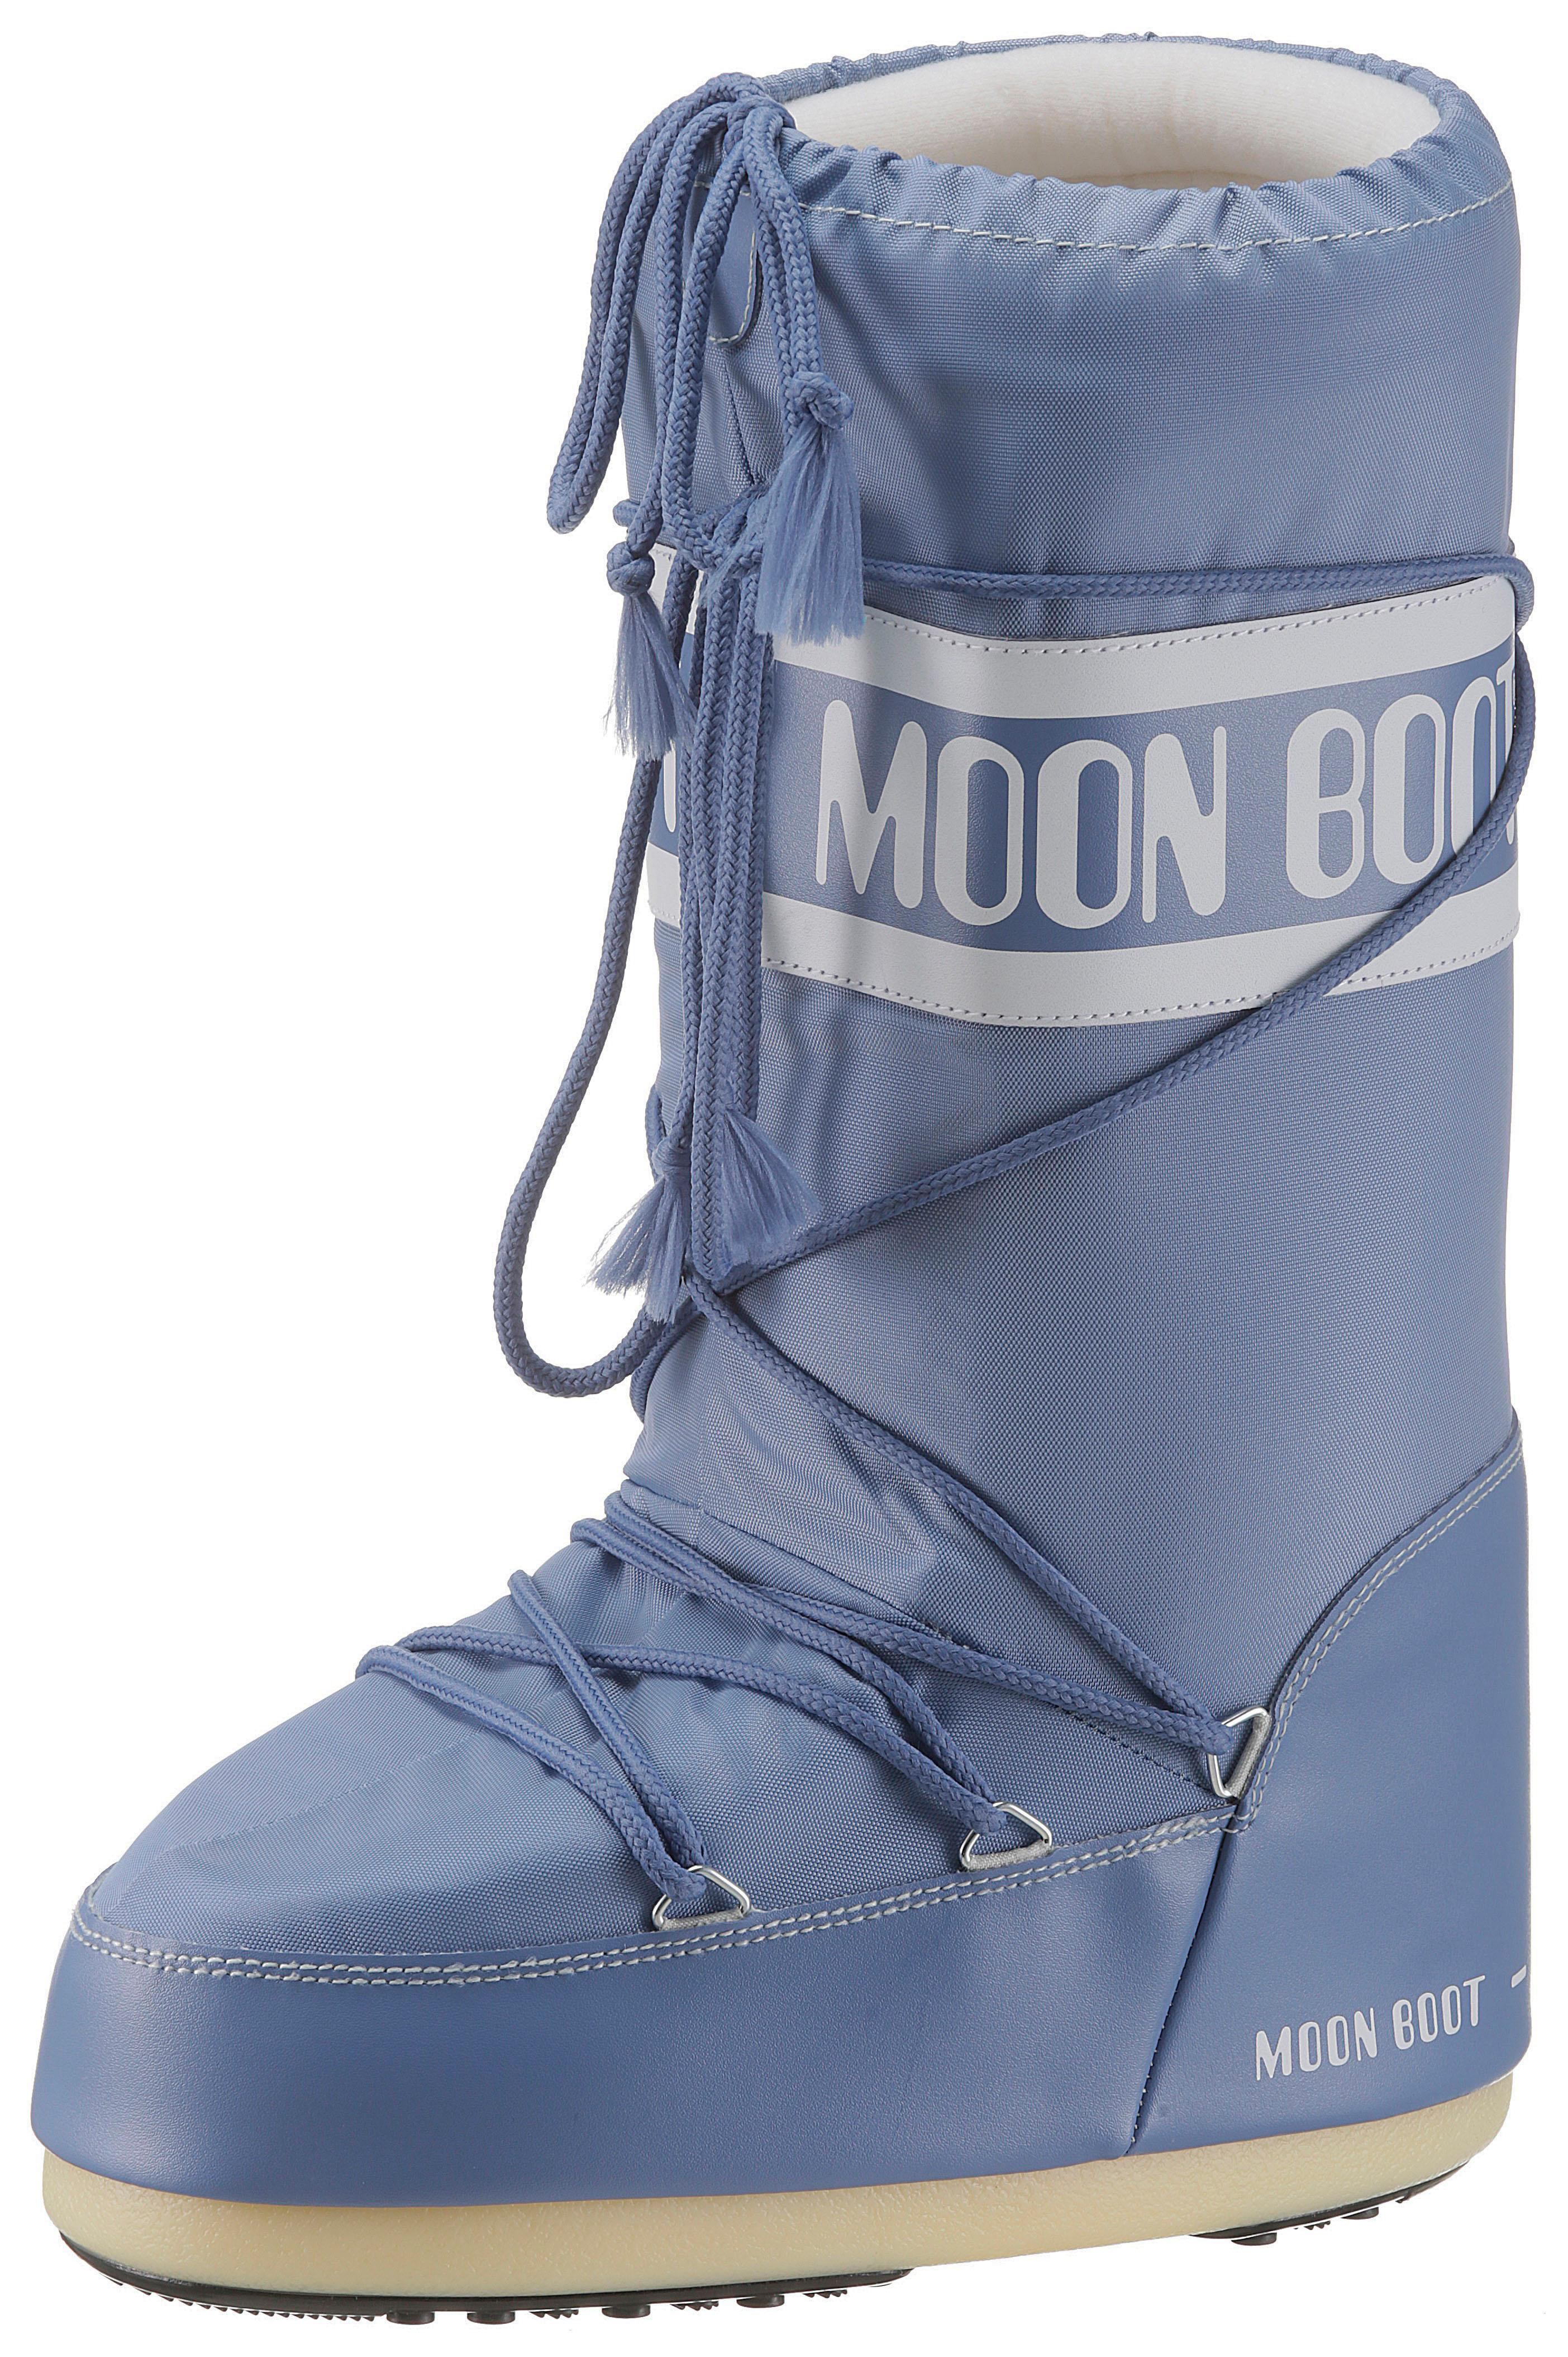 new style a1278 8e08f Moonboot Winterstiefel